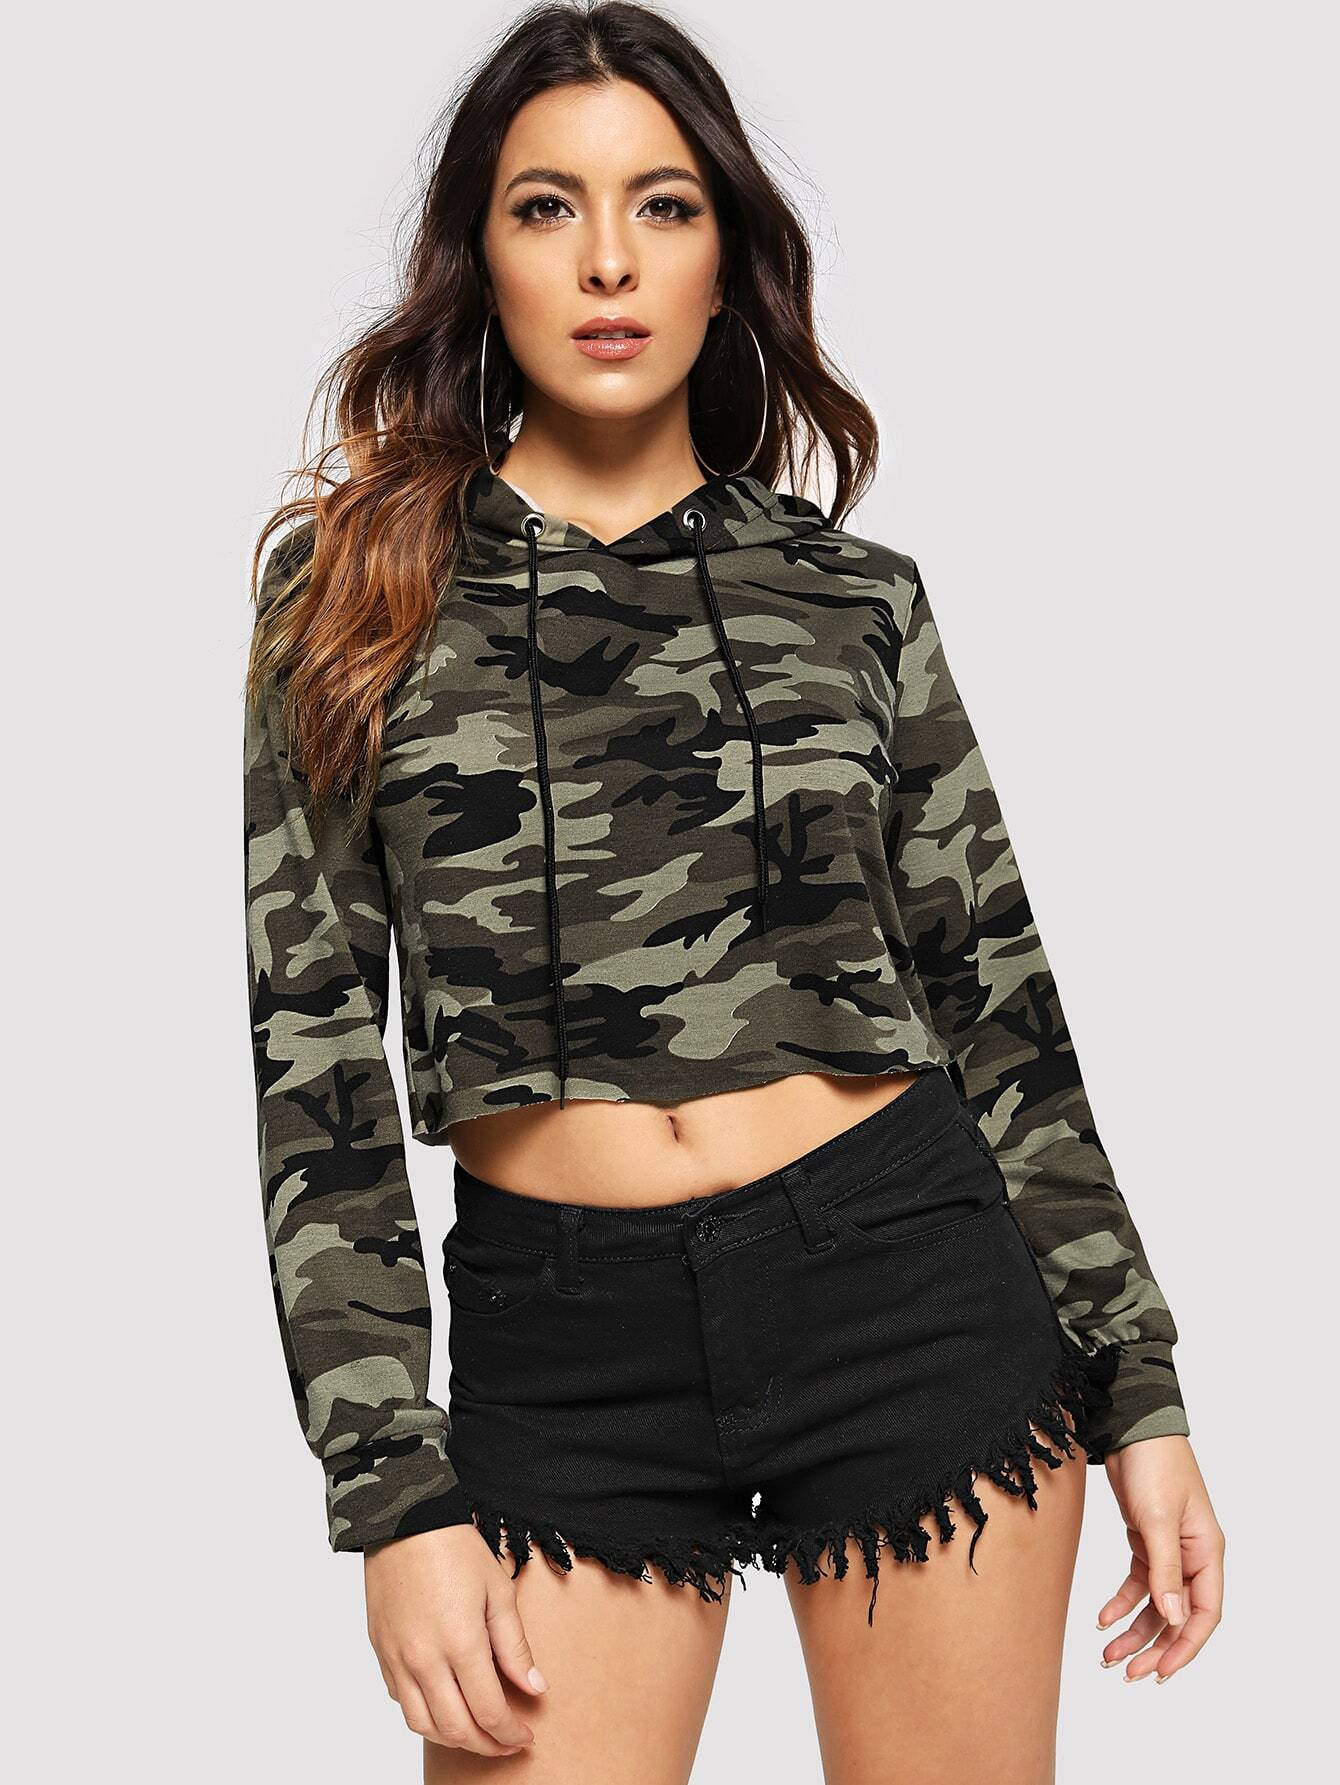 Camo Hooded Crop Sweatshirt Camo Hooded Crop Sweatshirt